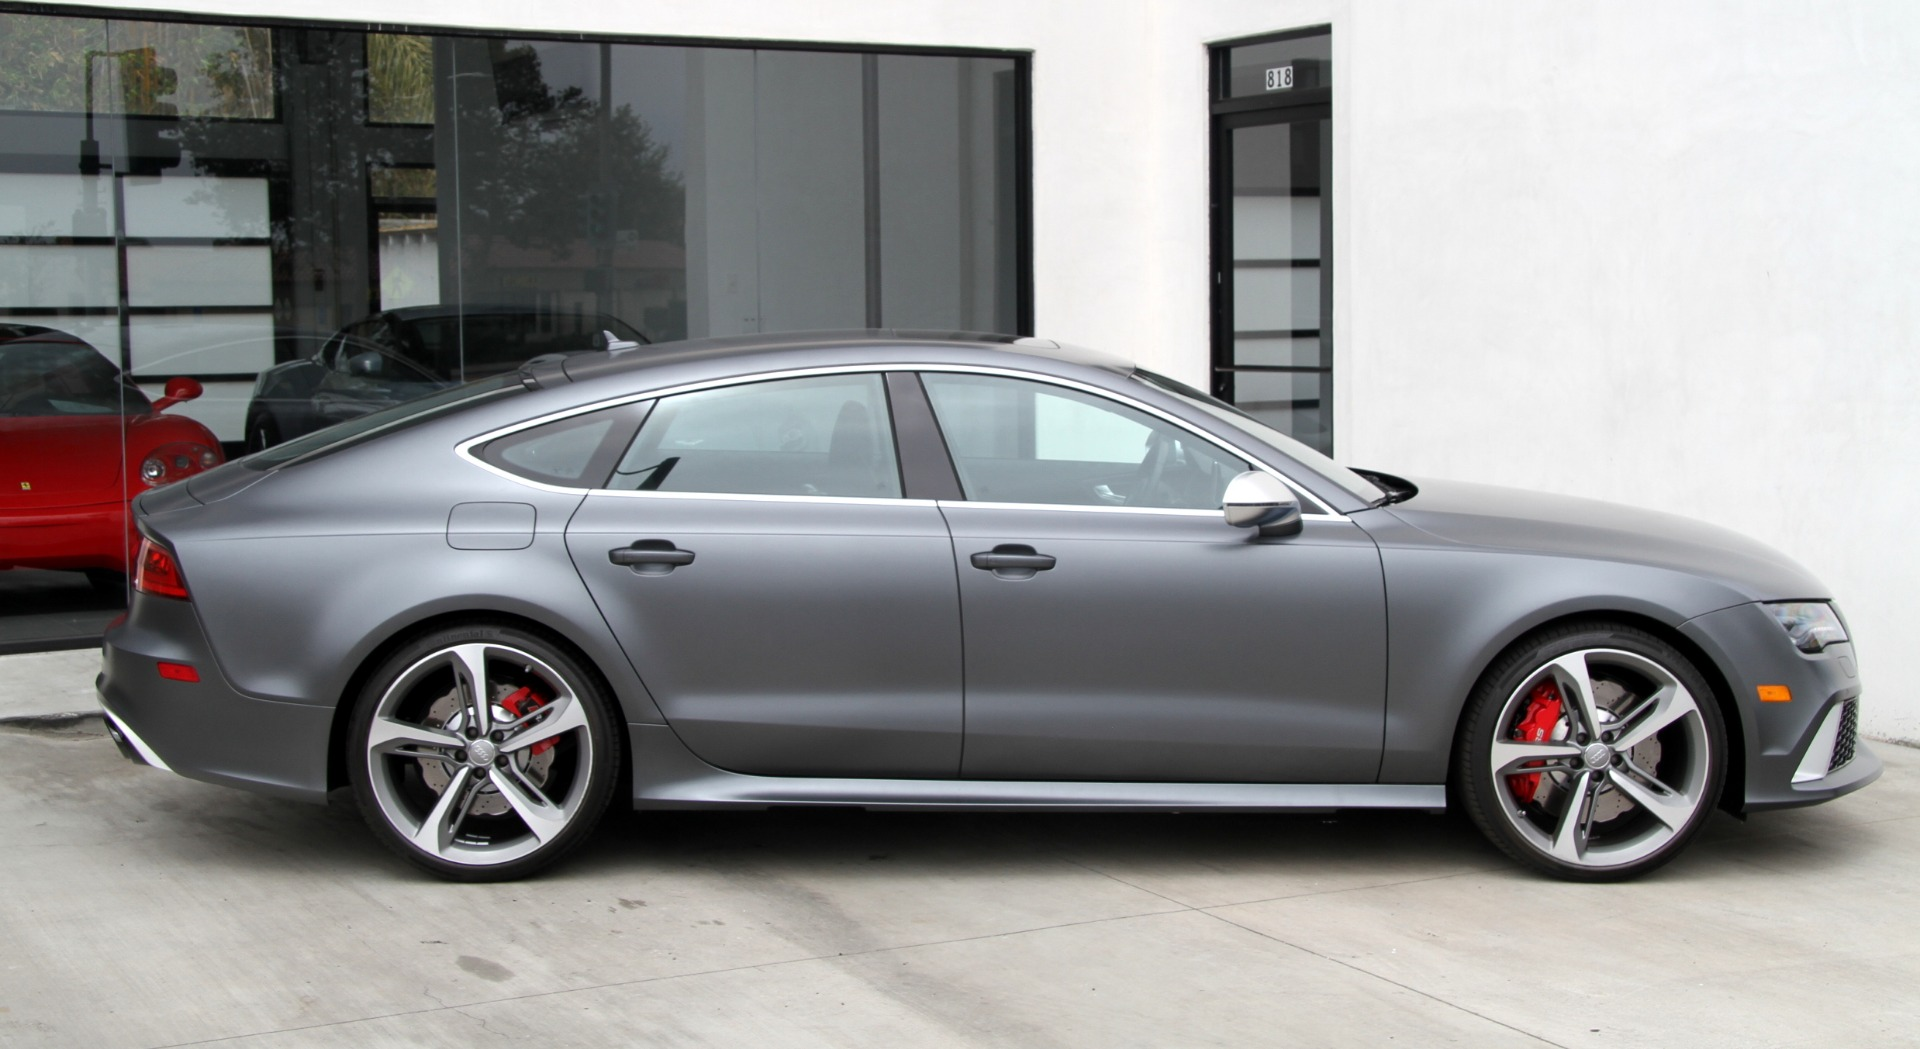 2014 Audi Rs 7 4 0t Prestige Factory Matte Paint